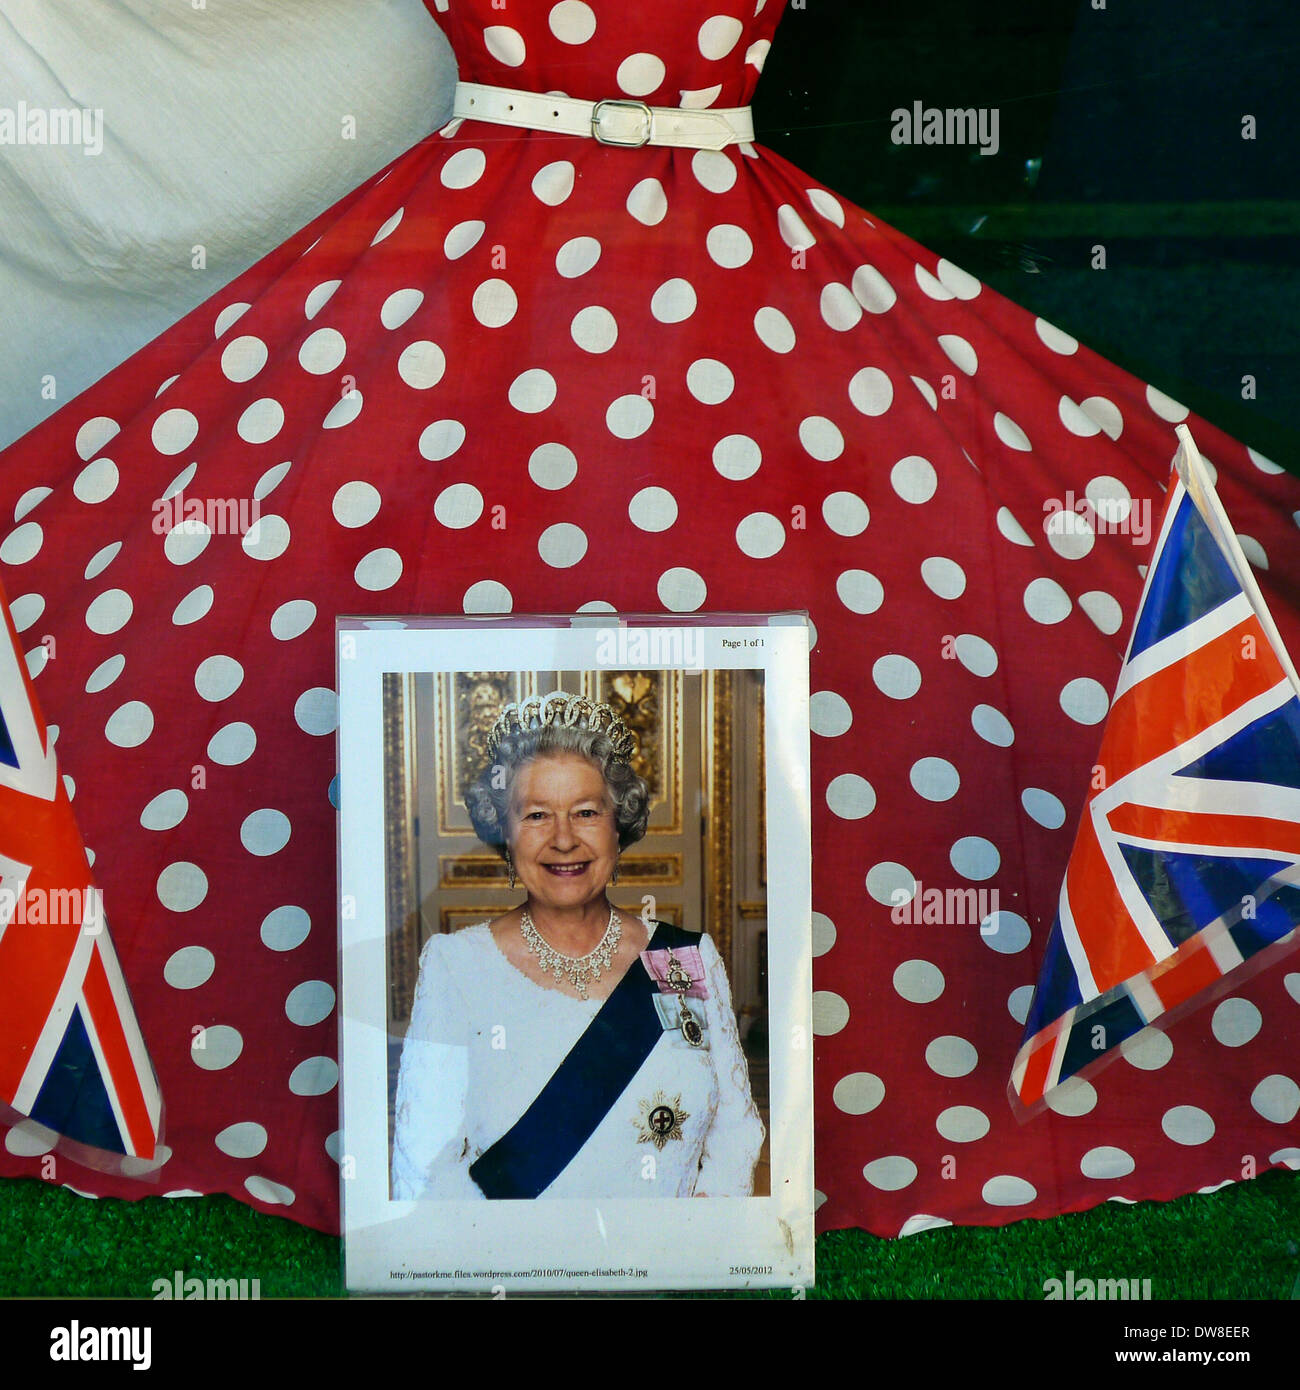 Union flags and photograph of the Queen in font of red spotted dress in shop window - Stock Image